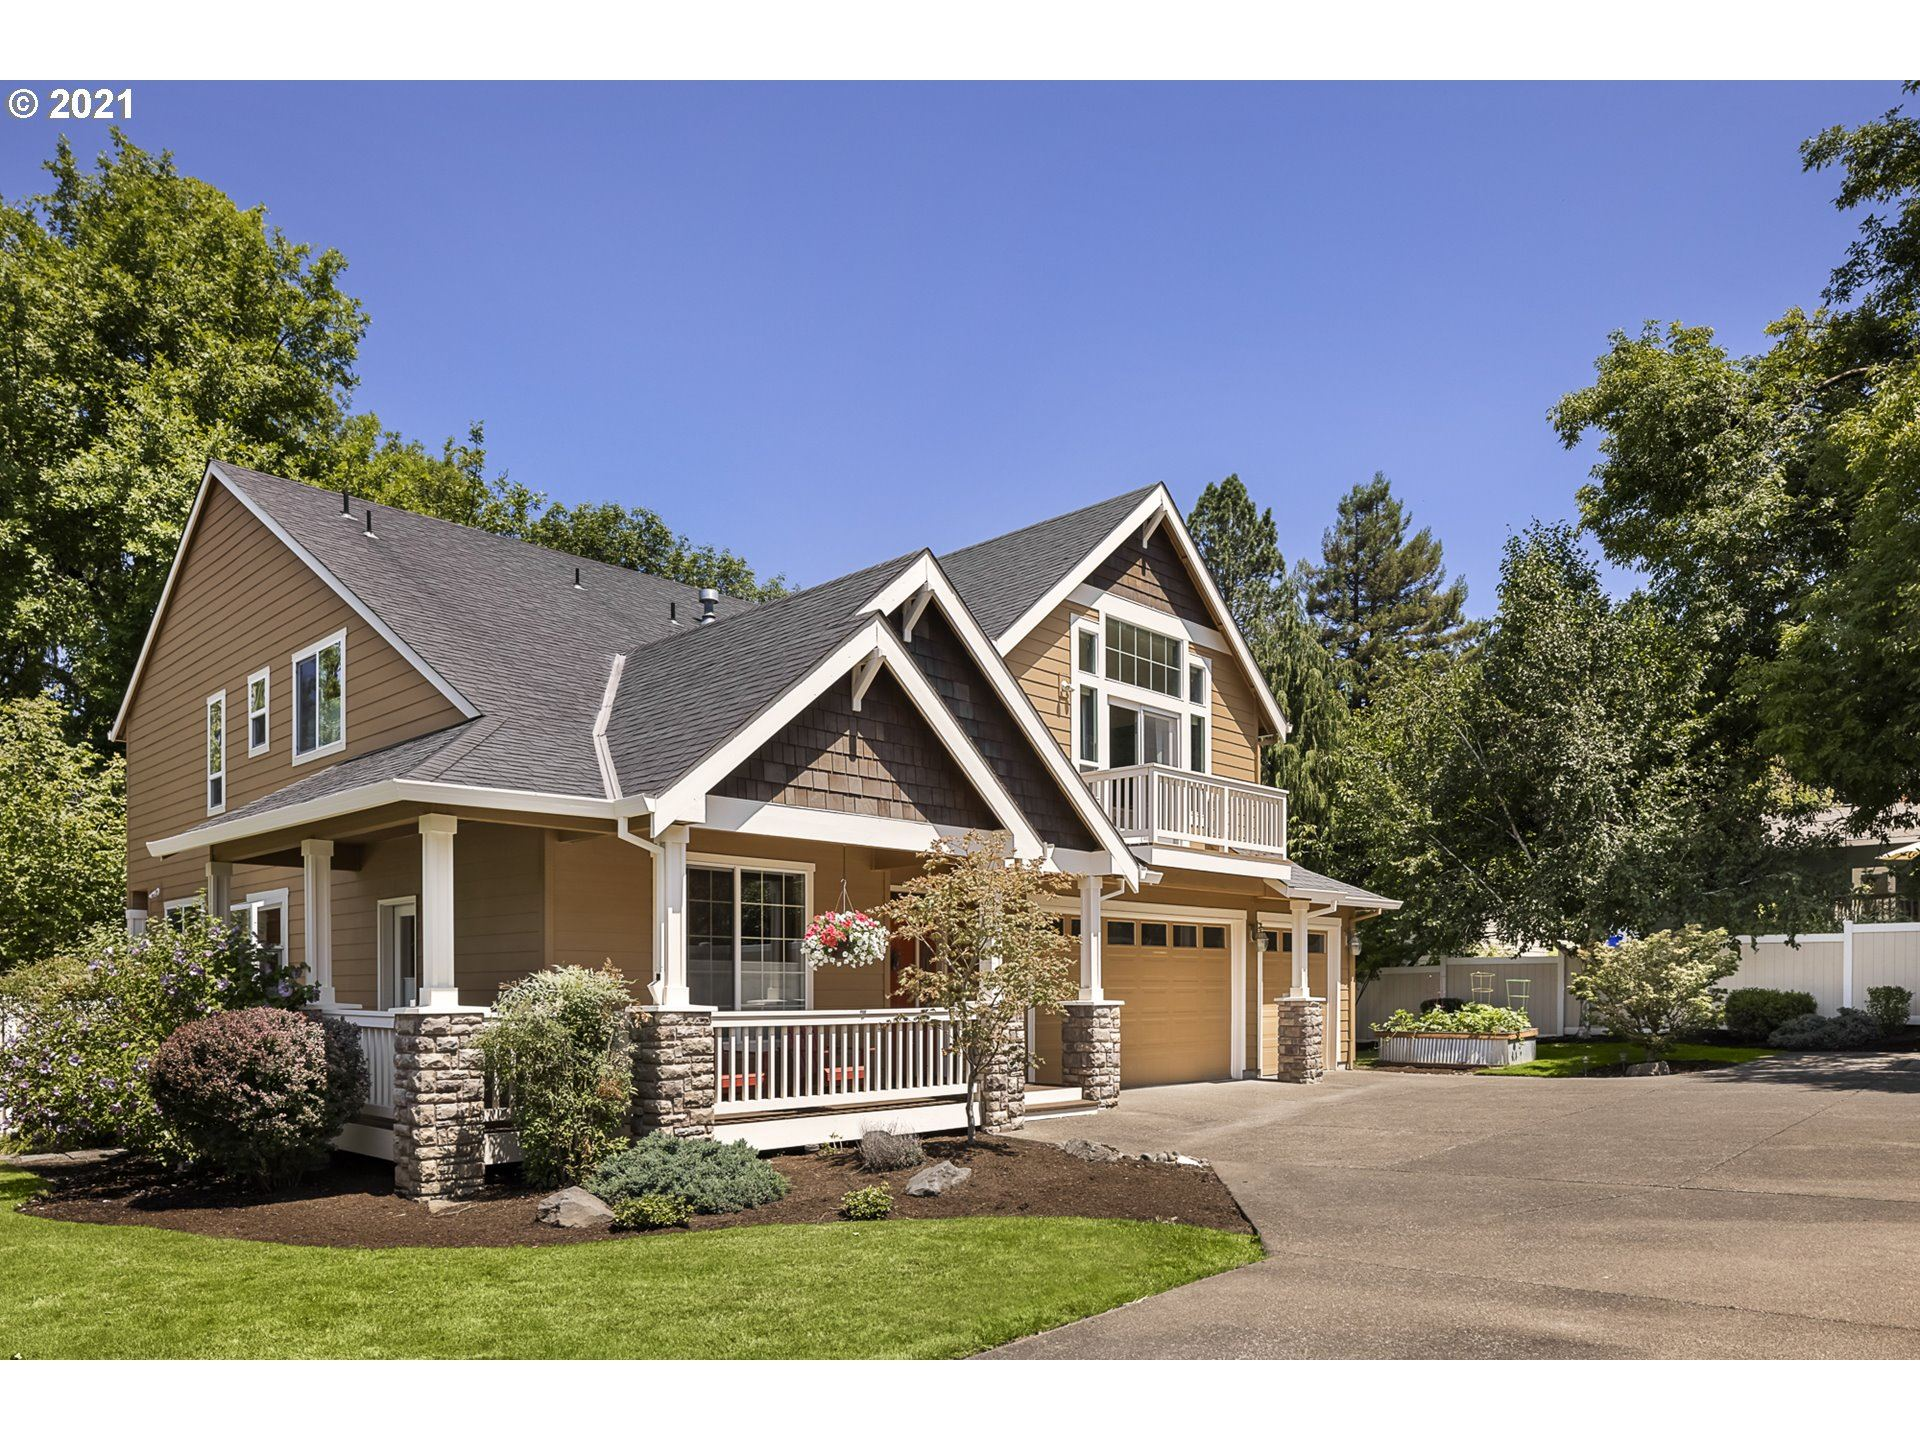 8318 SW 45TH AVE, Portland, OR 97219 - MLS#: 21321720